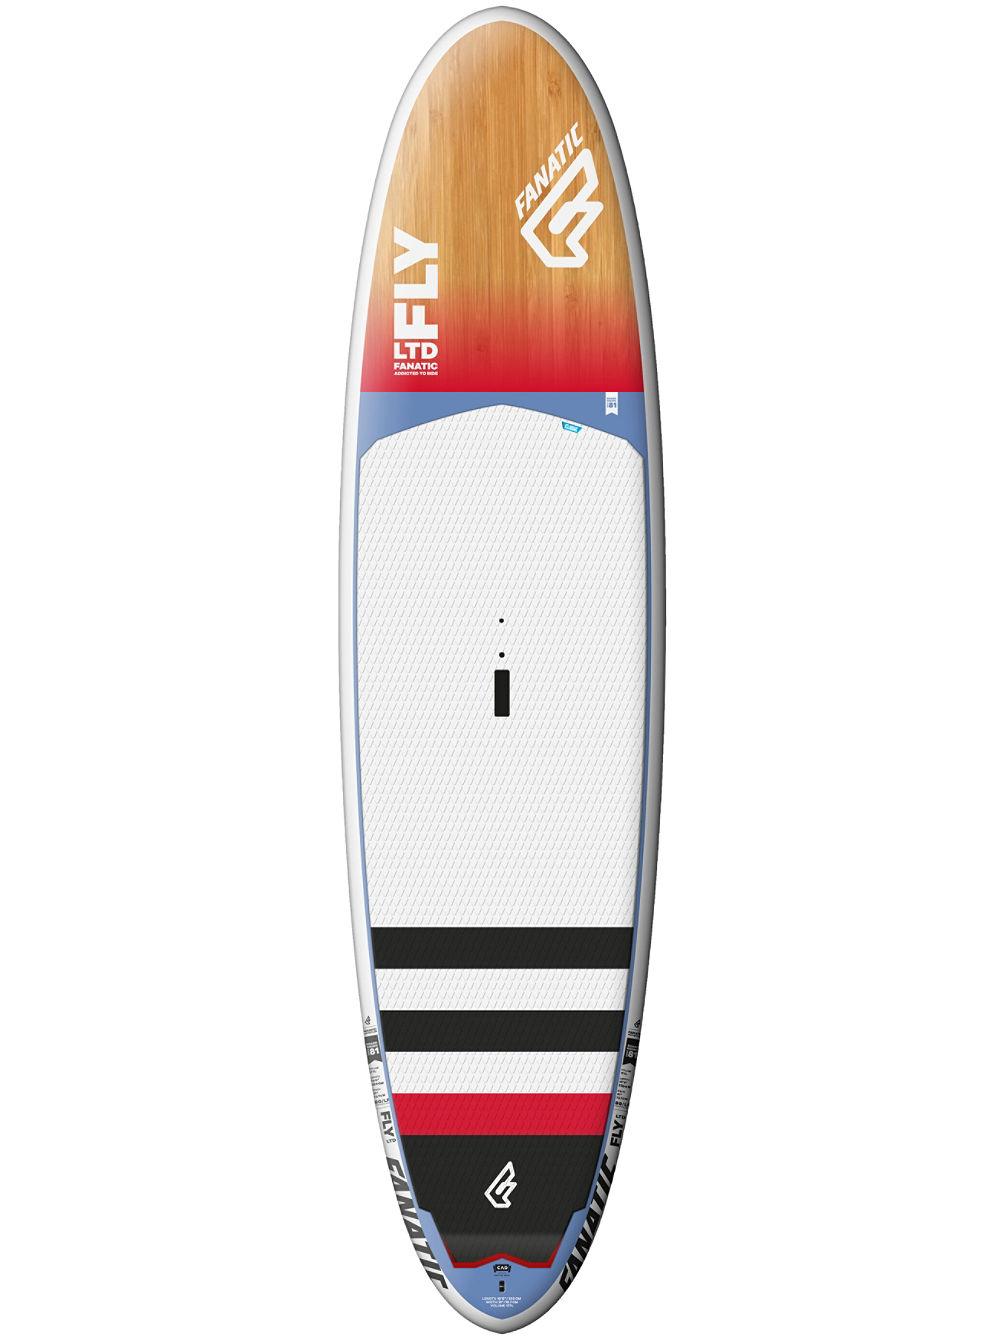 Fly We Ltd 10.6 SUP Board